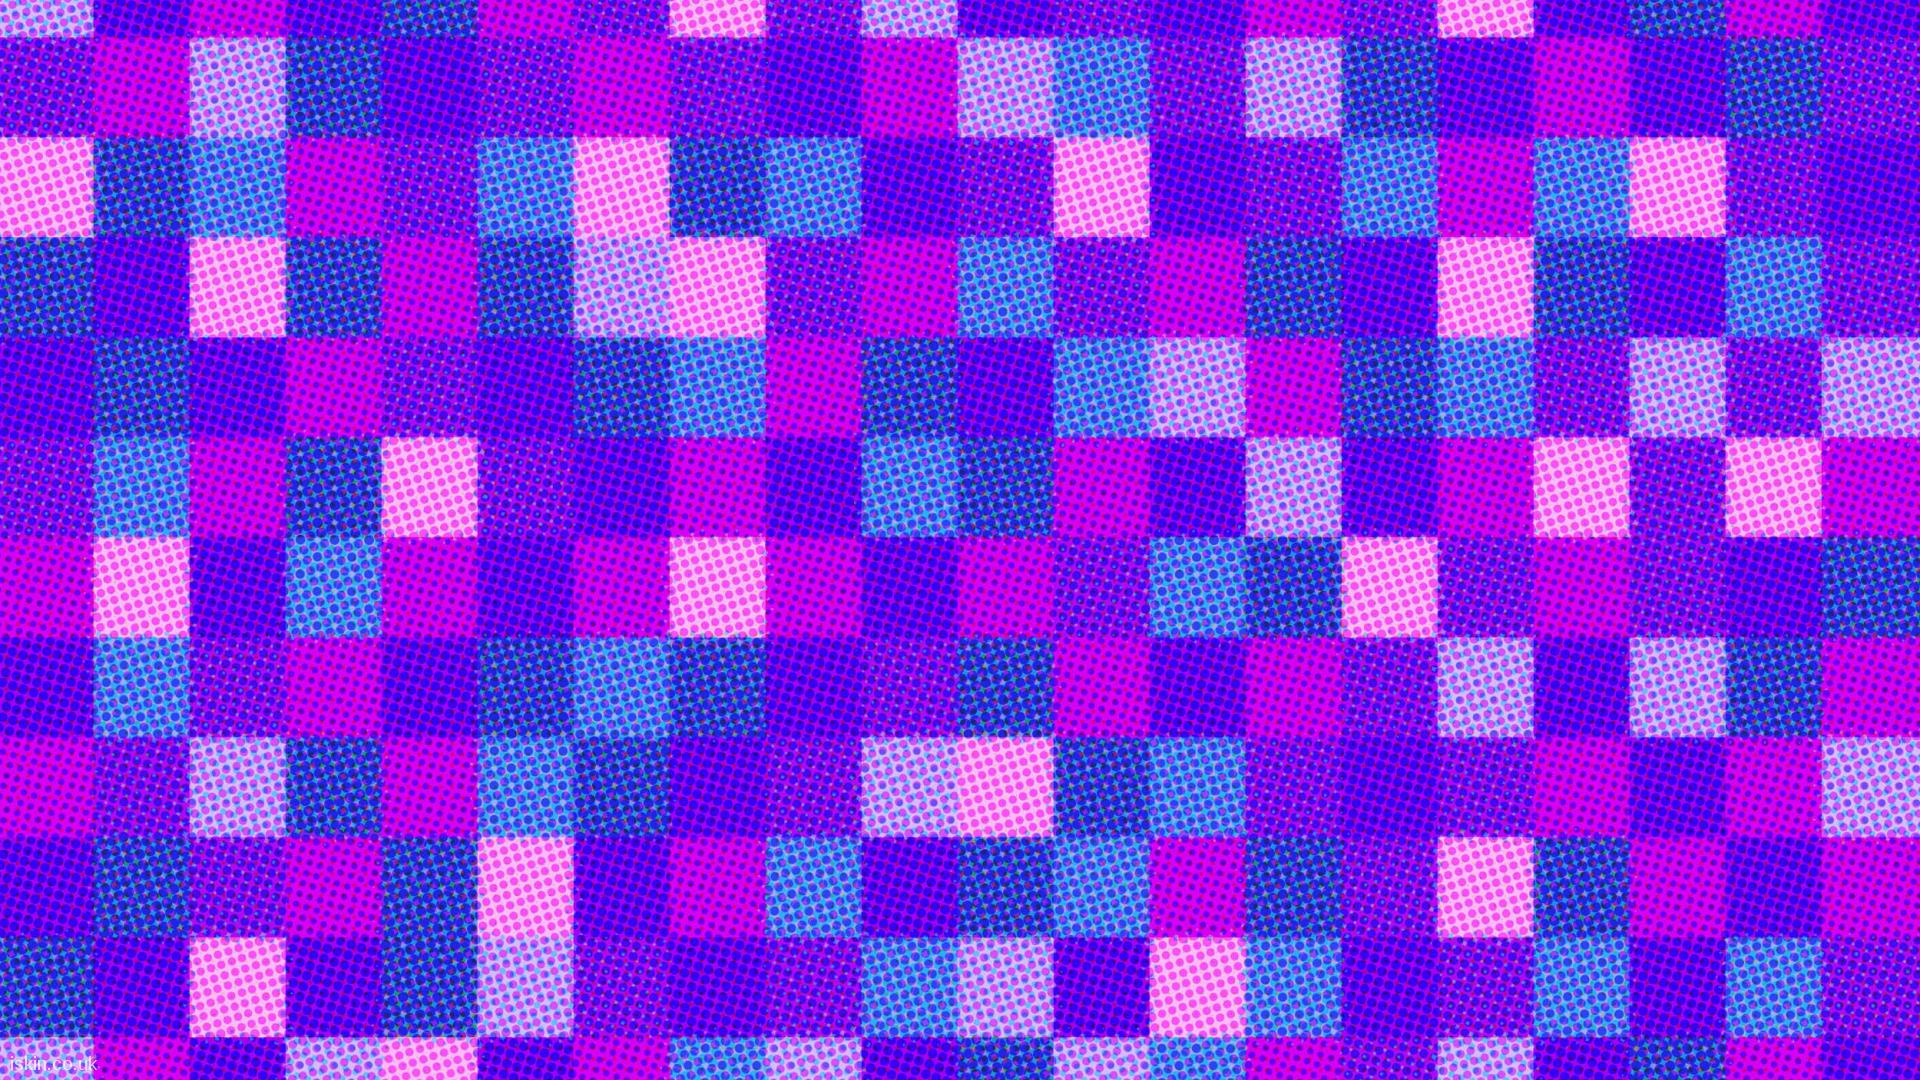 desktop image halftone dots and squares